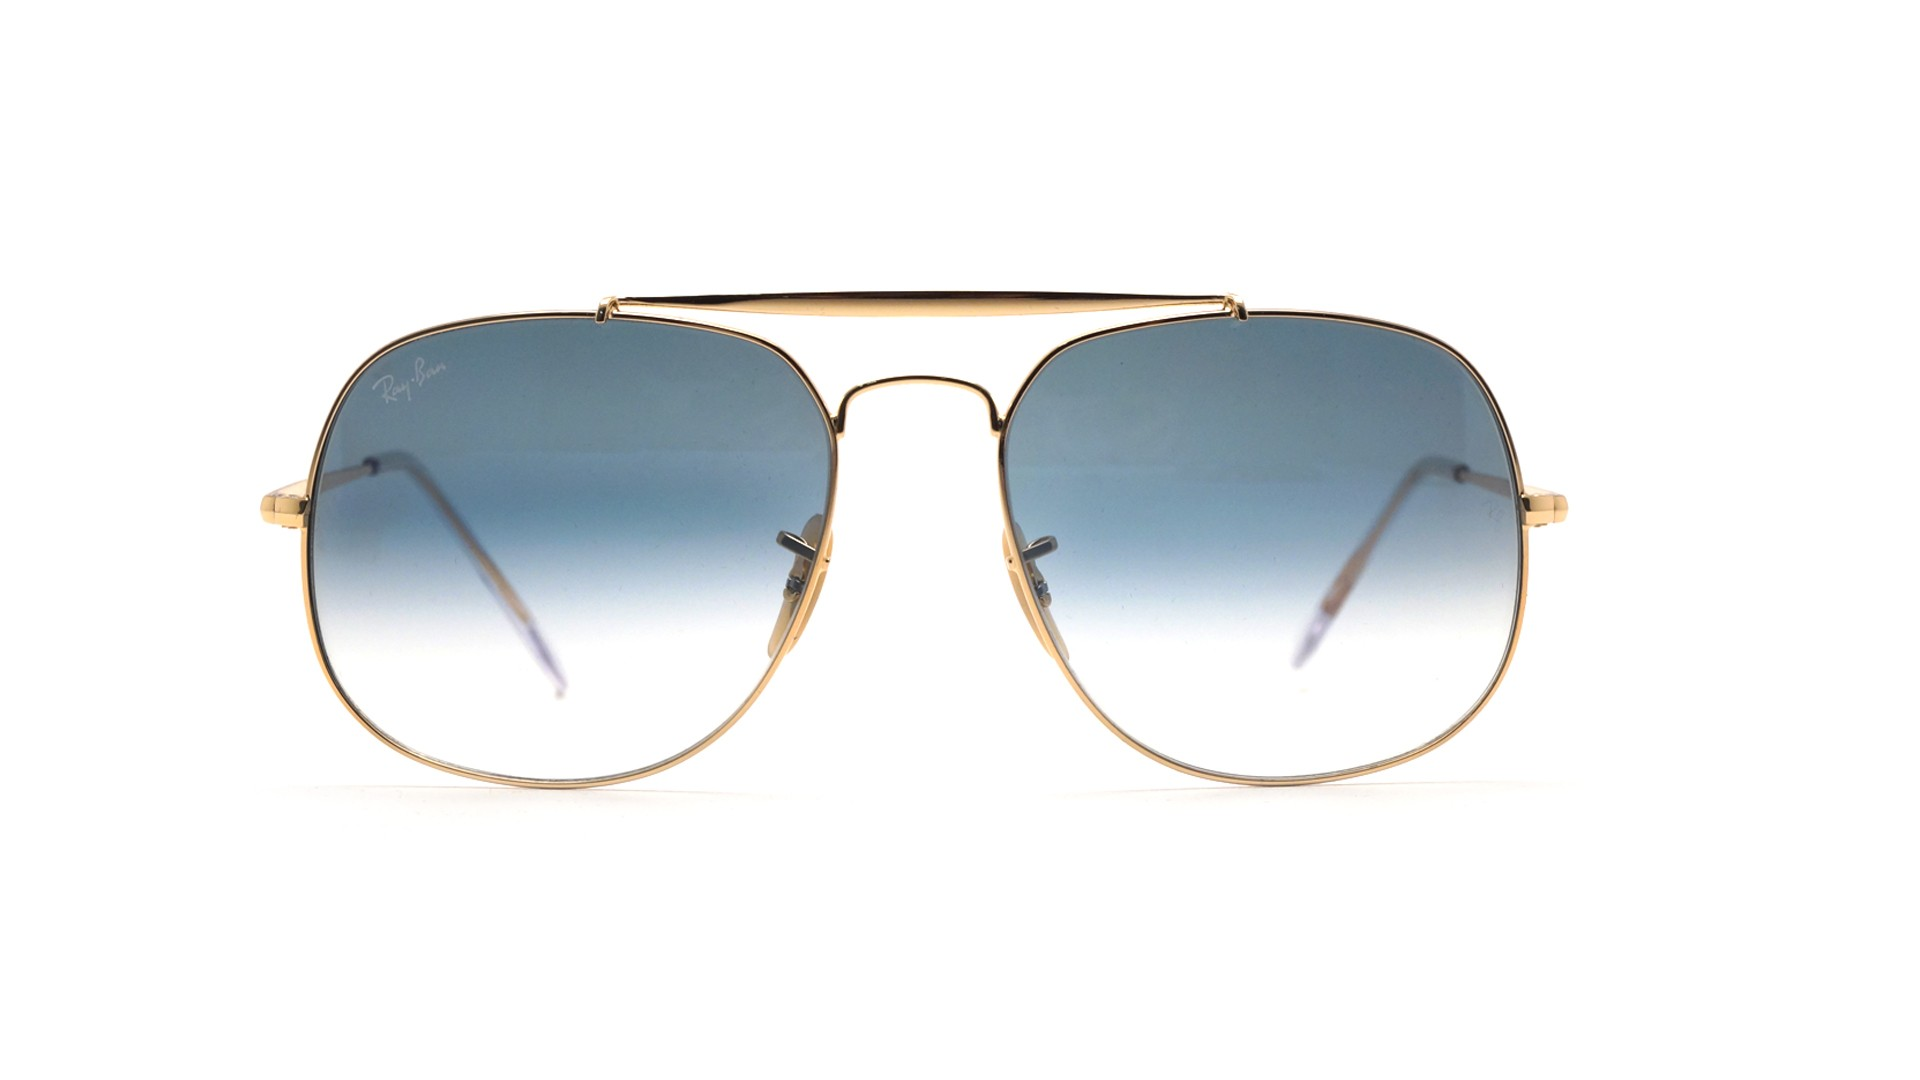 46a72054376da Sunglasses Ray-Ban General Gold RB3561 001 3F 57-17 Large Gradient